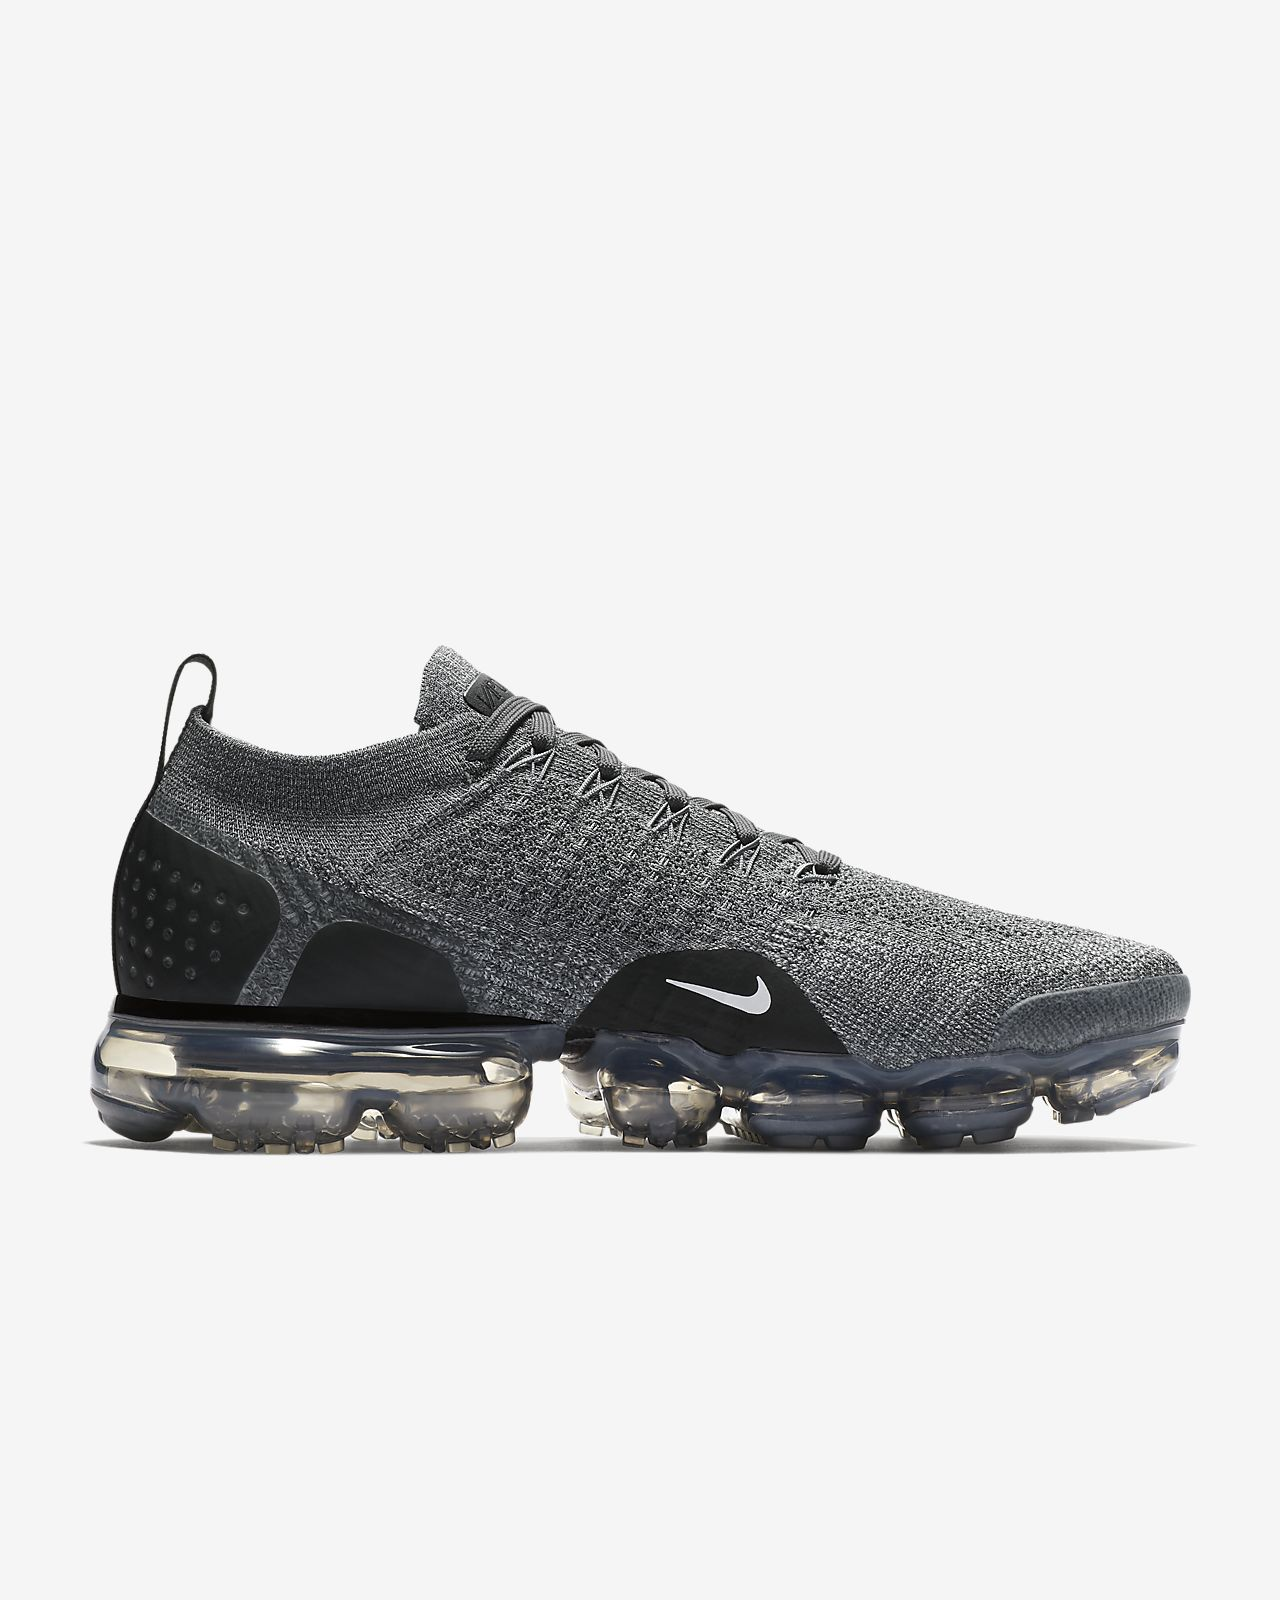 low priced 9cc8f 806f8 Nike AIR VAPORMAX FLYKNIT 2   GRIS Gris - Chaussures Chaussures-de-running  Homme GH8HUA1Z - destrainspourtous.fr